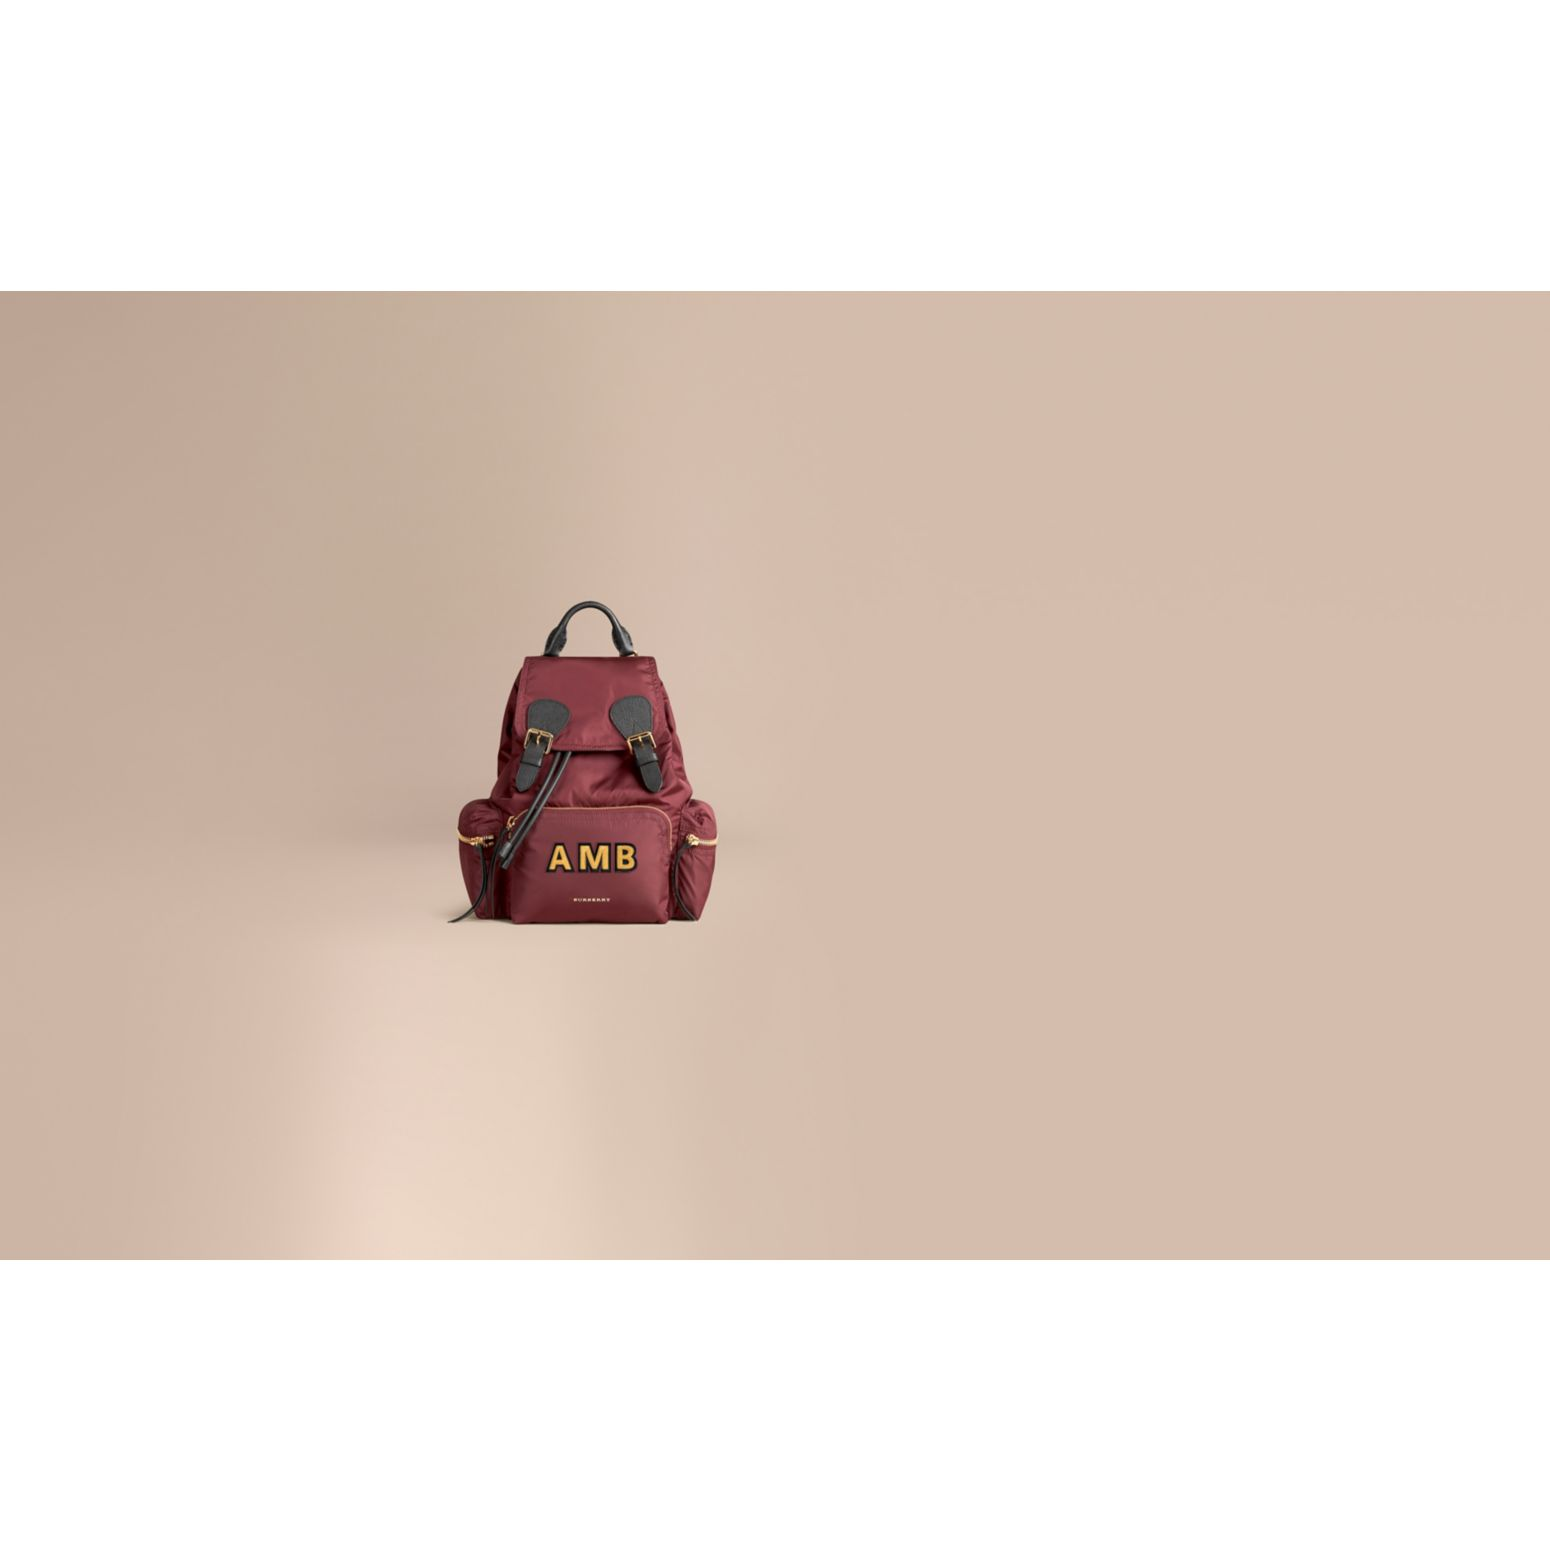 Sac The Rucksack moyen en nylon technique et cuir (Rouge Bourgogne) - Femme | Burberry Canada - photo de la galerie 1